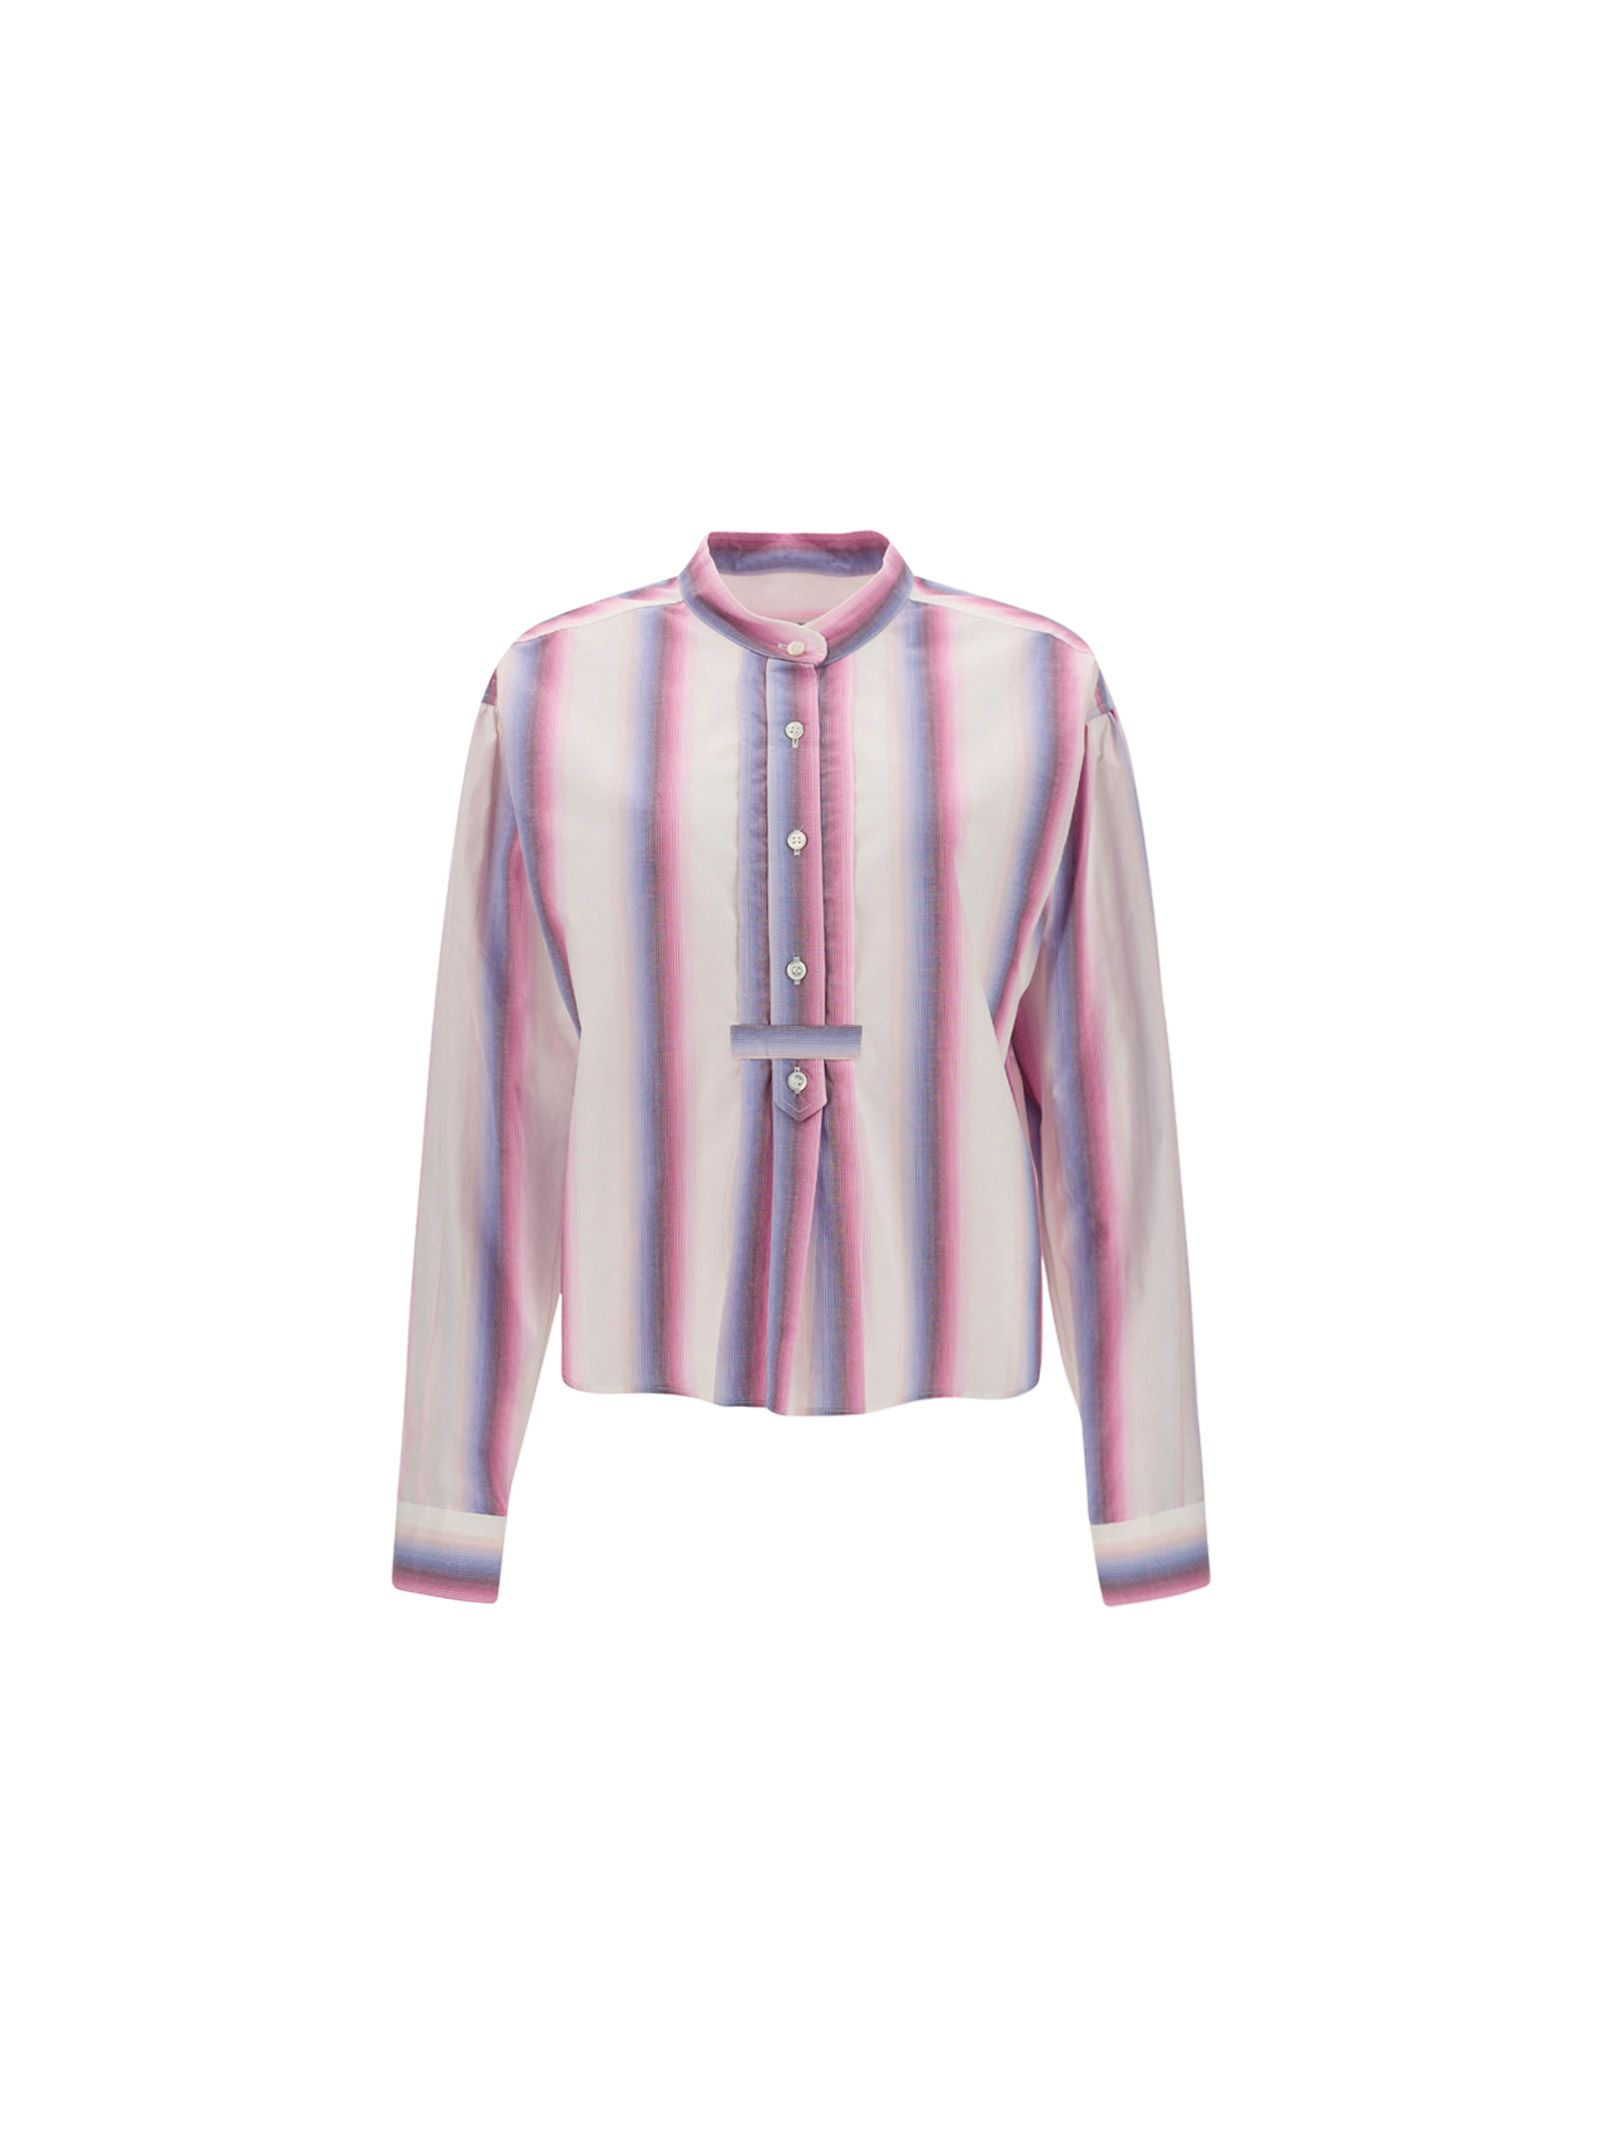 Isabel Marant ISABEL MARANT WOMEN'S PINK OTHER MATERIALS SHIRT